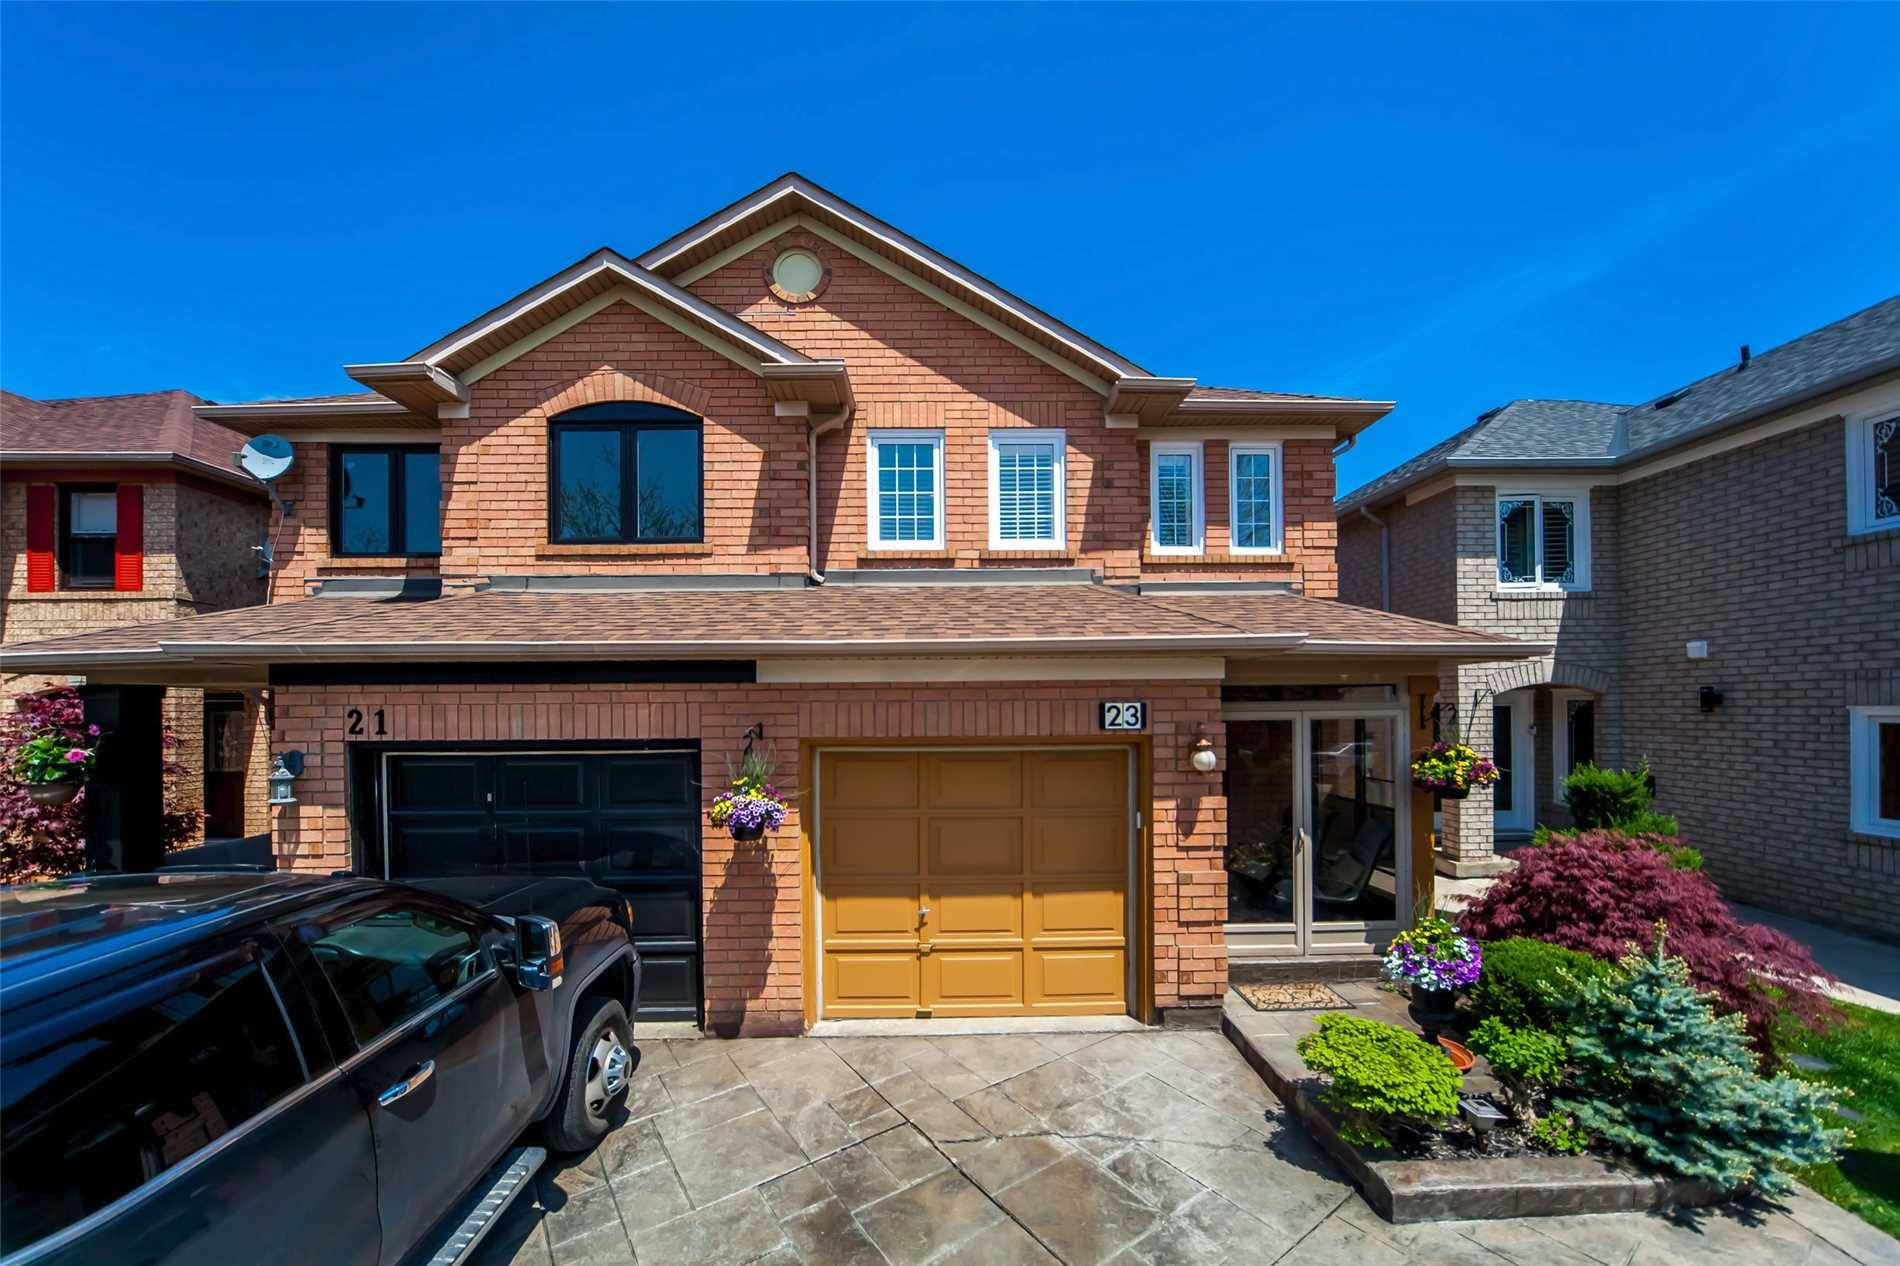 Townhouse for sale at 23 Field Sparrow Rd Brampton Ontario - MLS: W4489806